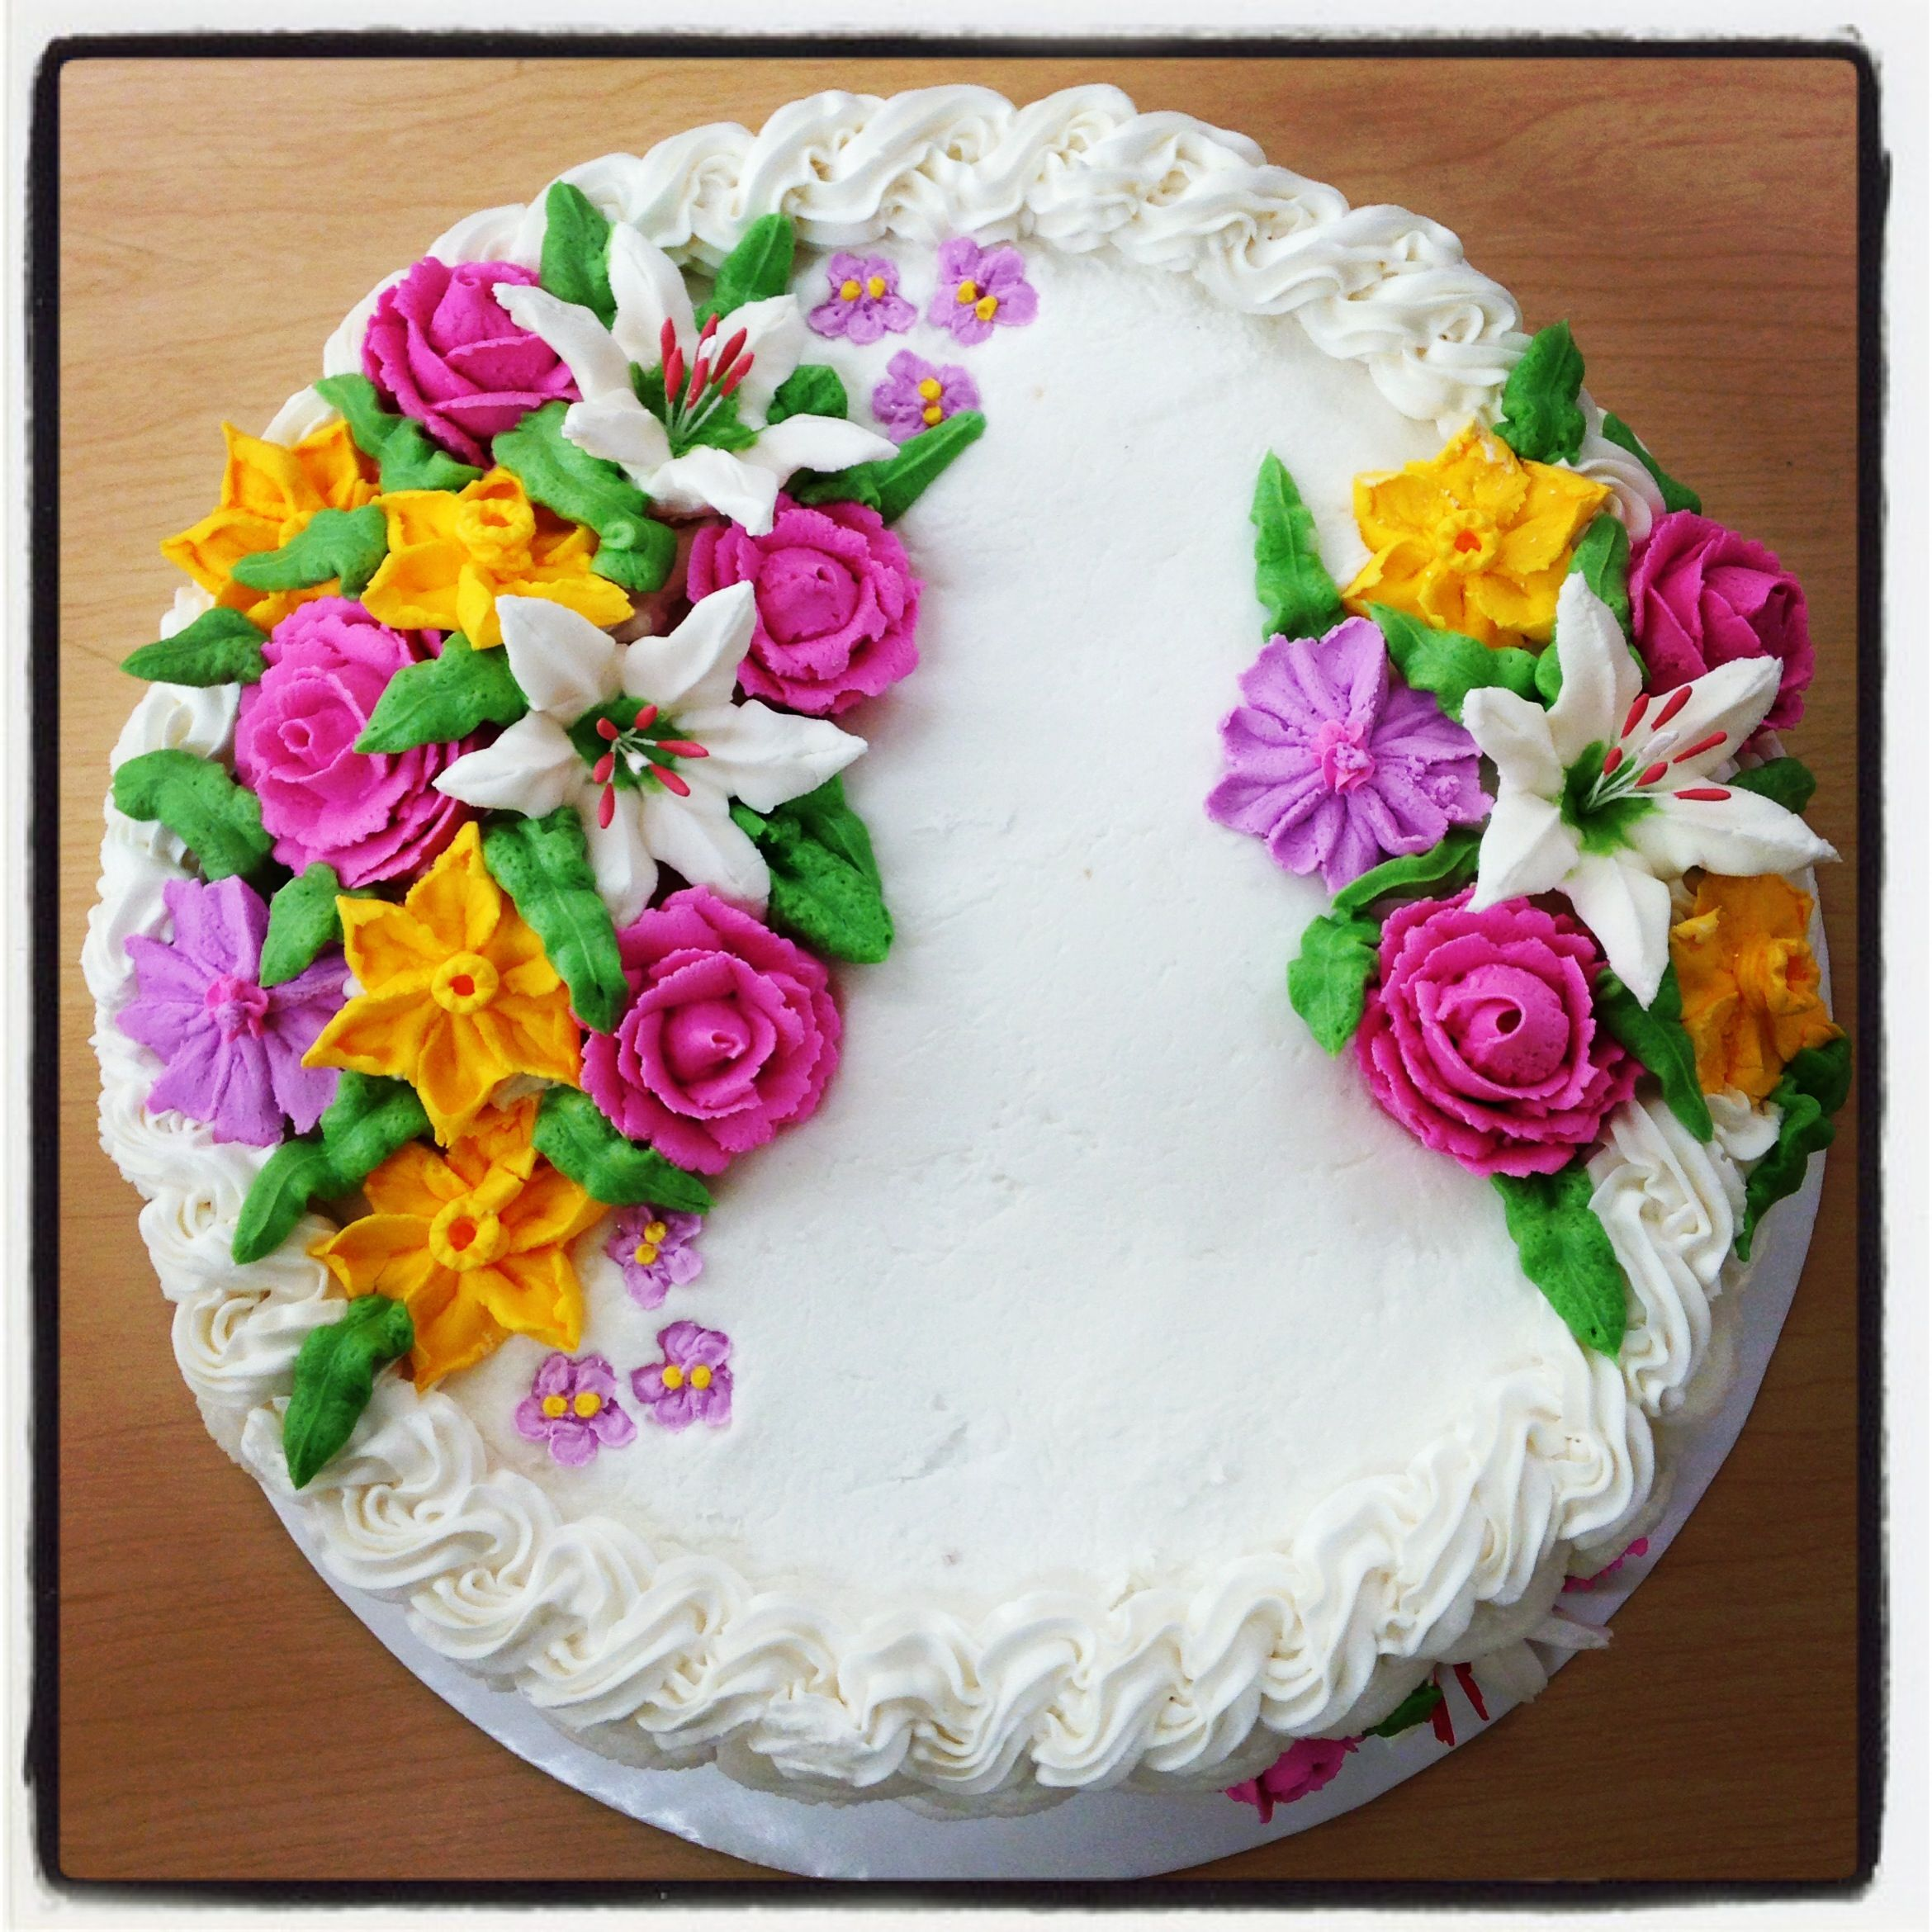 Cake Decorating With Icing Flowers : Pin Pin 50 Royal Icing Roses Edible For Cake Decorating ...